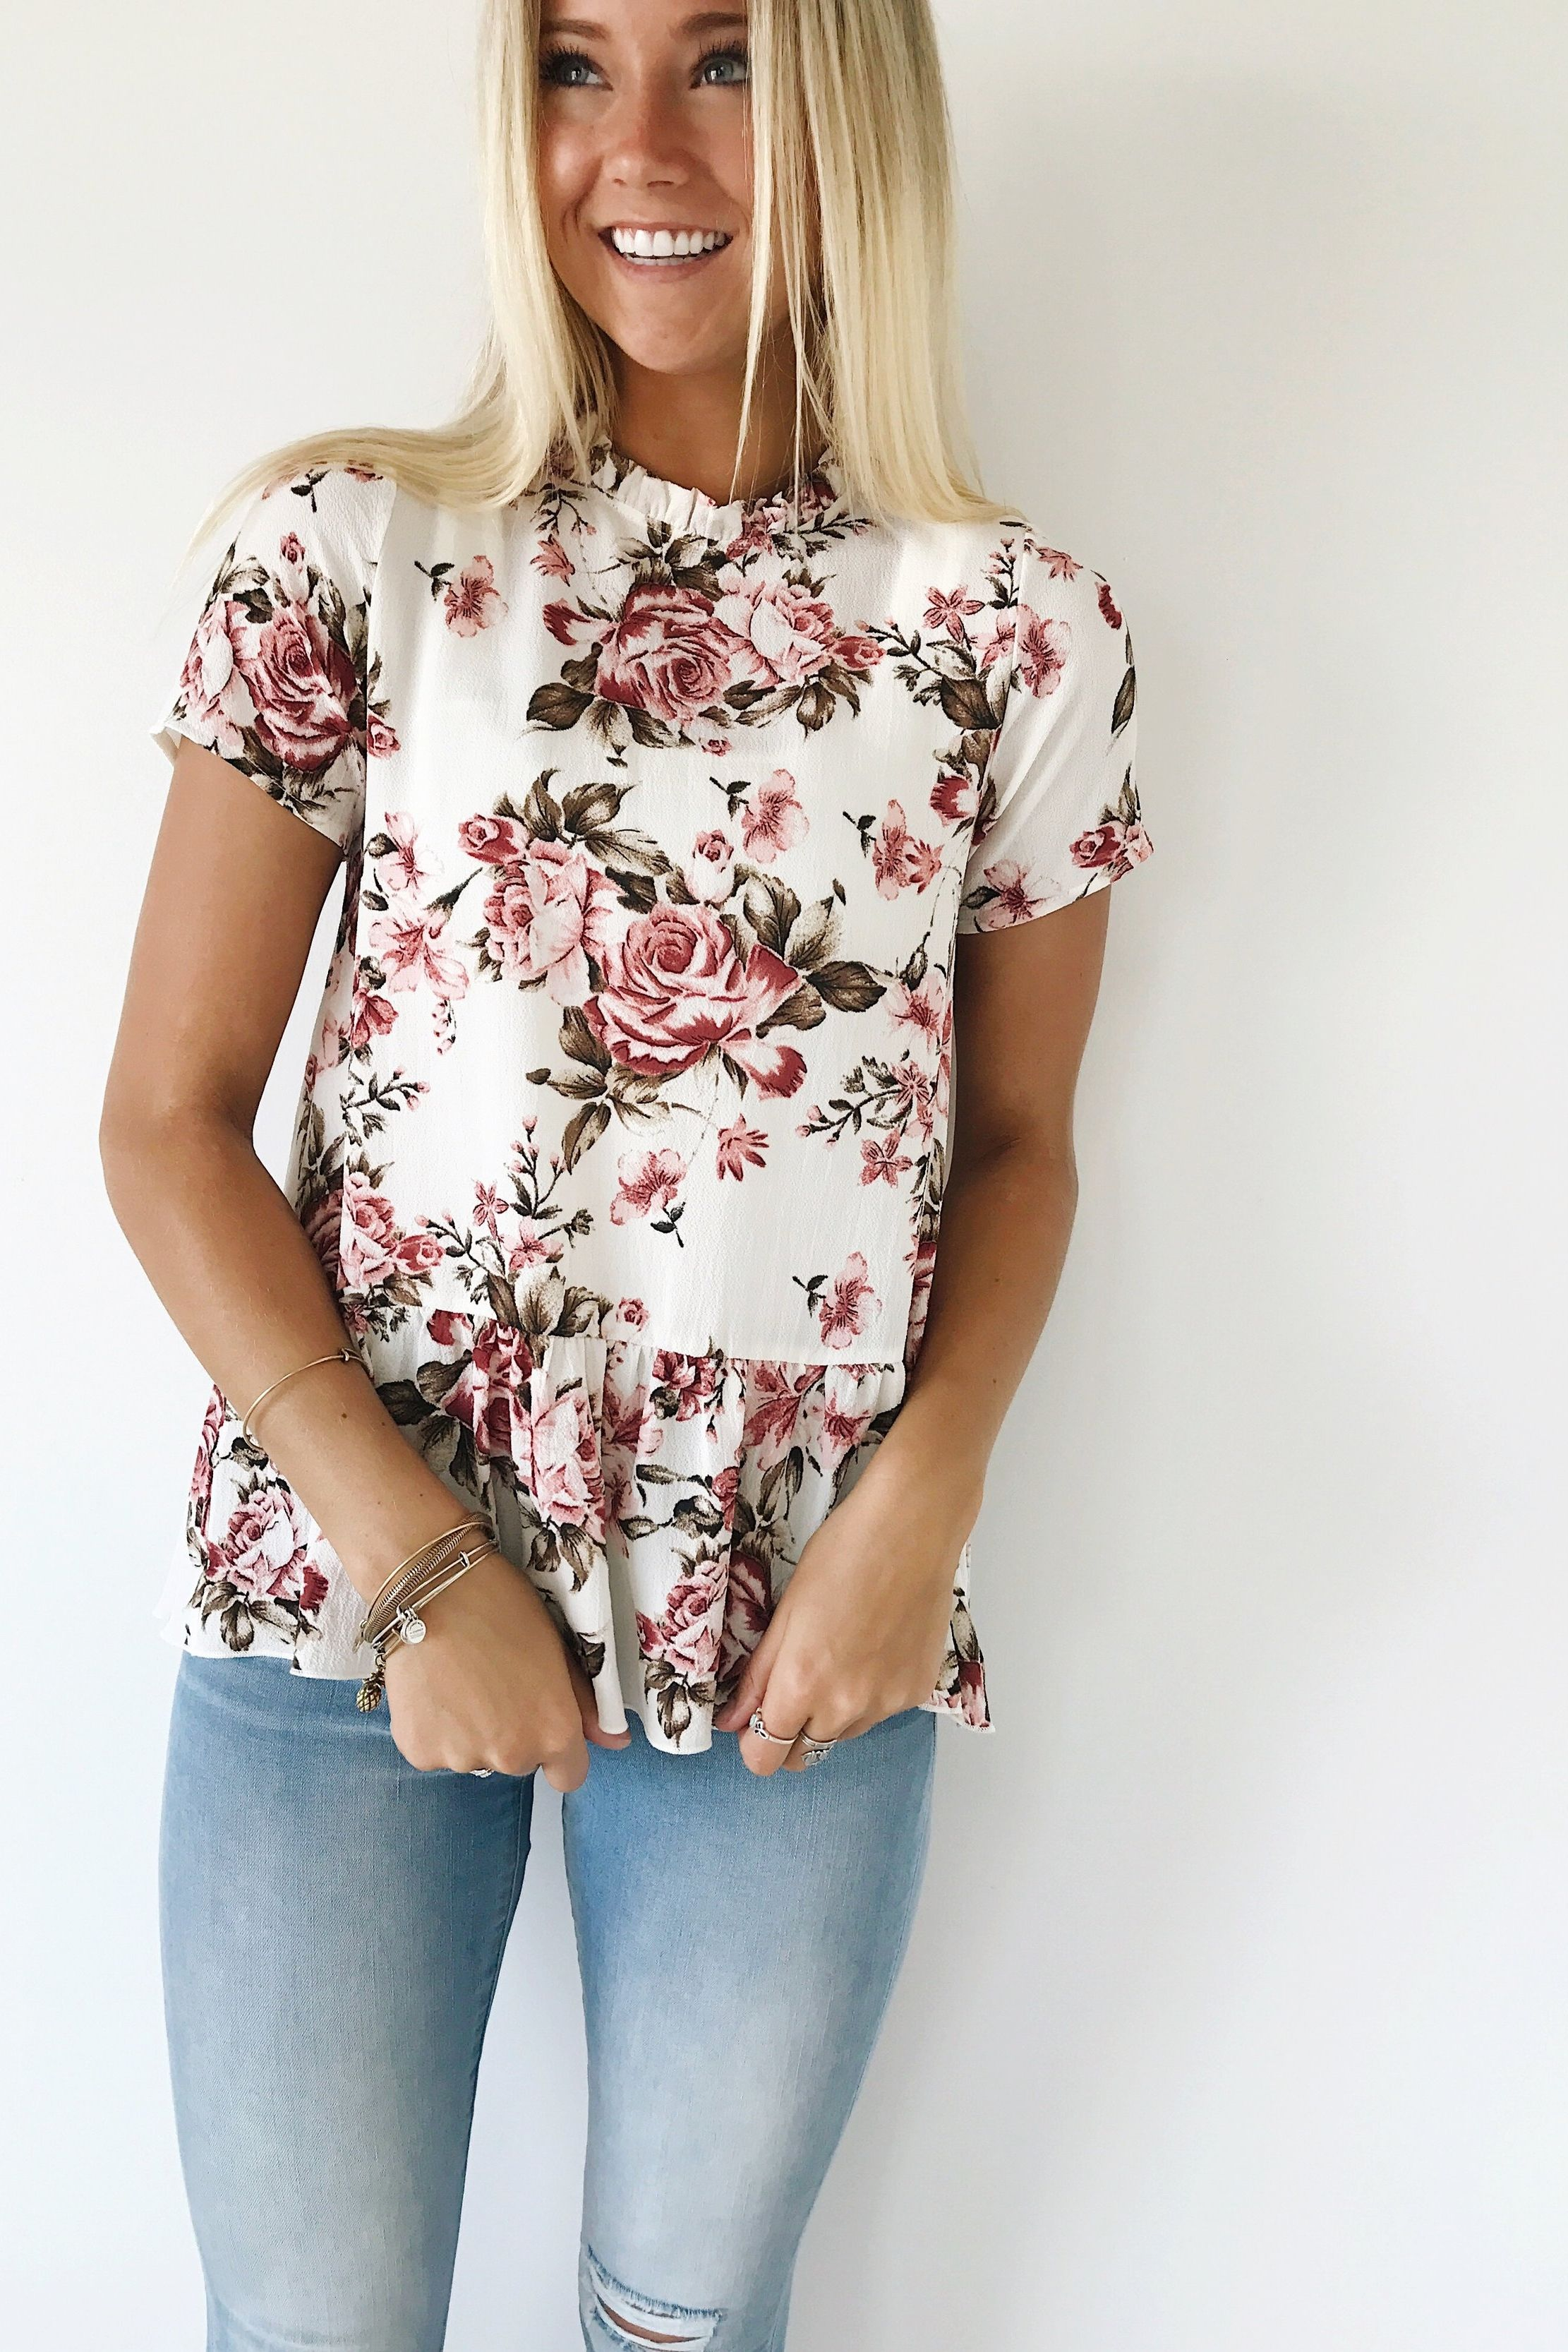 ab5d7e591799 Women Short Sleeve Floral Printed Ruffles Casual Shirt Lady flower – Shop  The Nation Summer Fashion